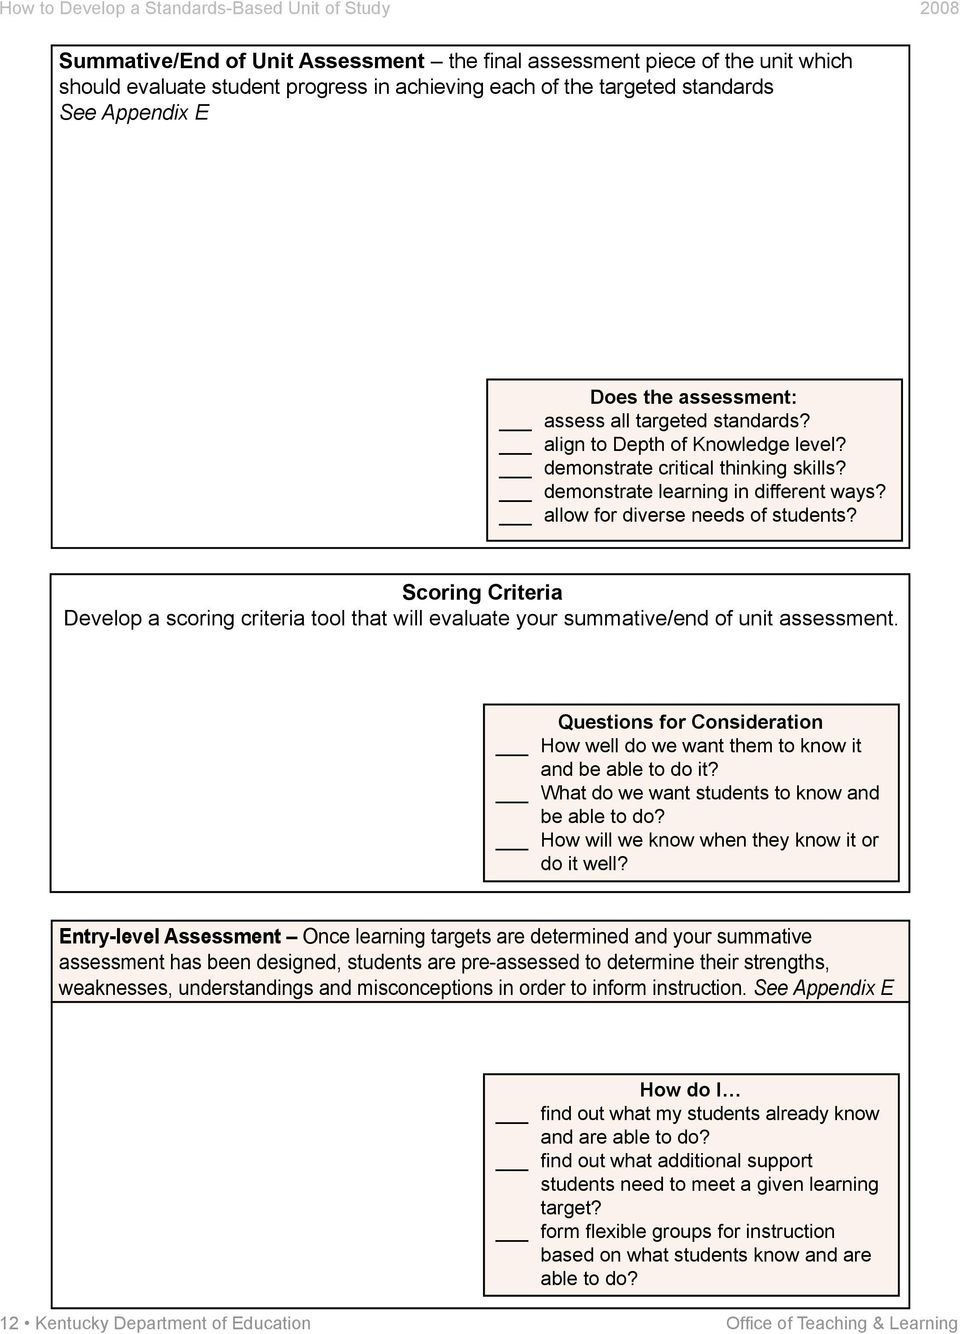 Scoring Criteria Develop a scoring criteria tool that will evaluate your summative/end of unit assessment. Questions for Consideration How well do we want them to know it and be able to do it?